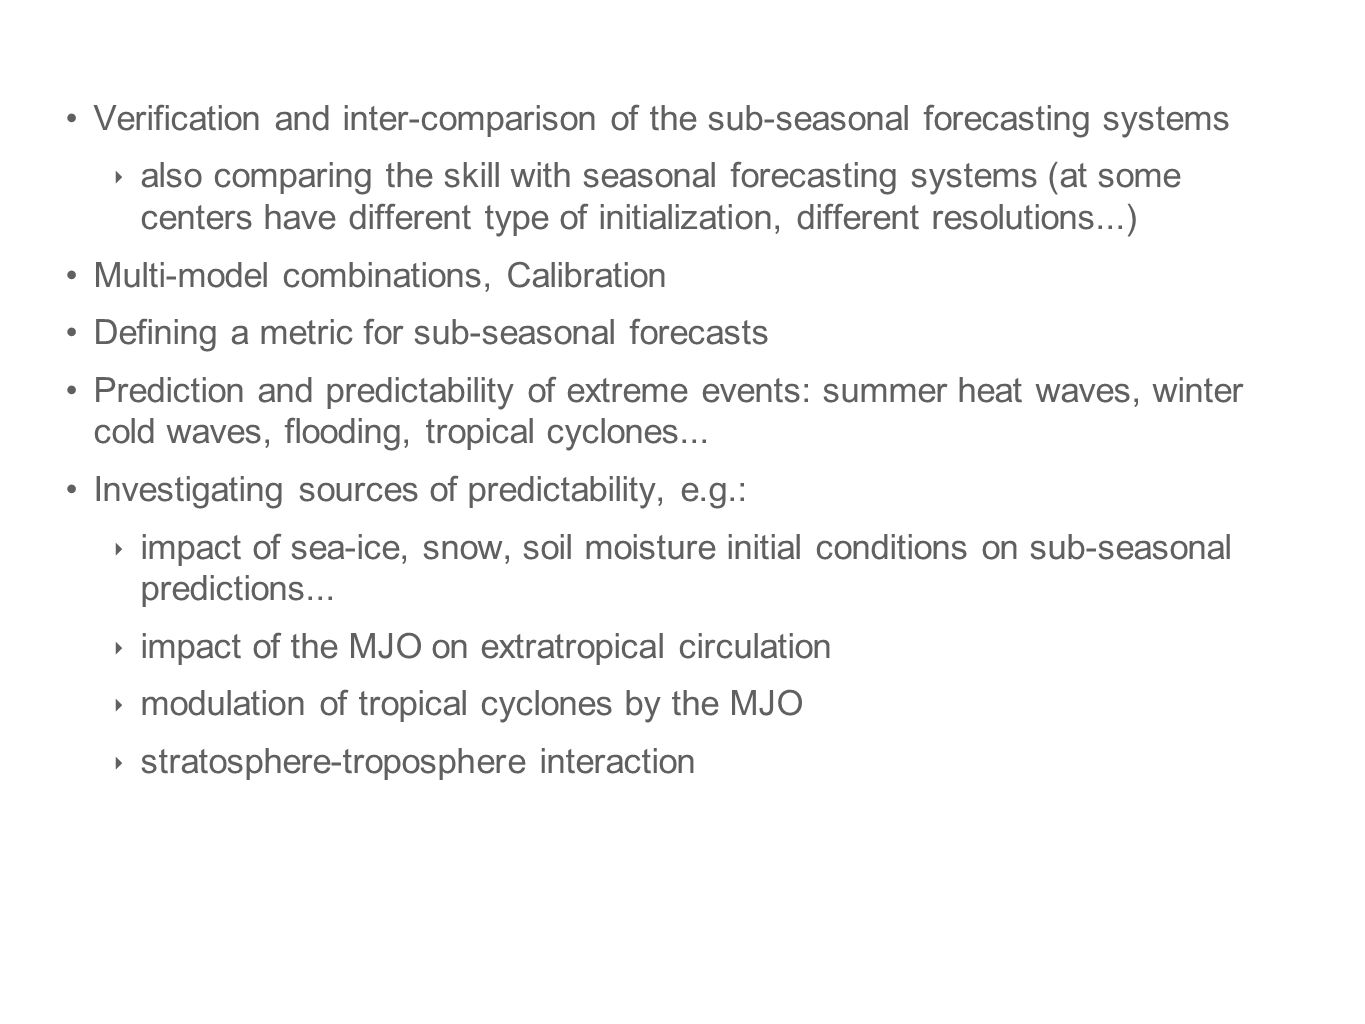 Verification and inter-comparison of the sub-seasonal forecasting systems also comparing the skill with seasonal forecasting systems (at some centers have different type of initialization, different resolutions...) Multi-model combinations, Calibration Defining a metric for sub-seasonal forecasts Prediction and predictability of extreme events: summer heat waves, winter cold waves, flooding, tropical cyclones...